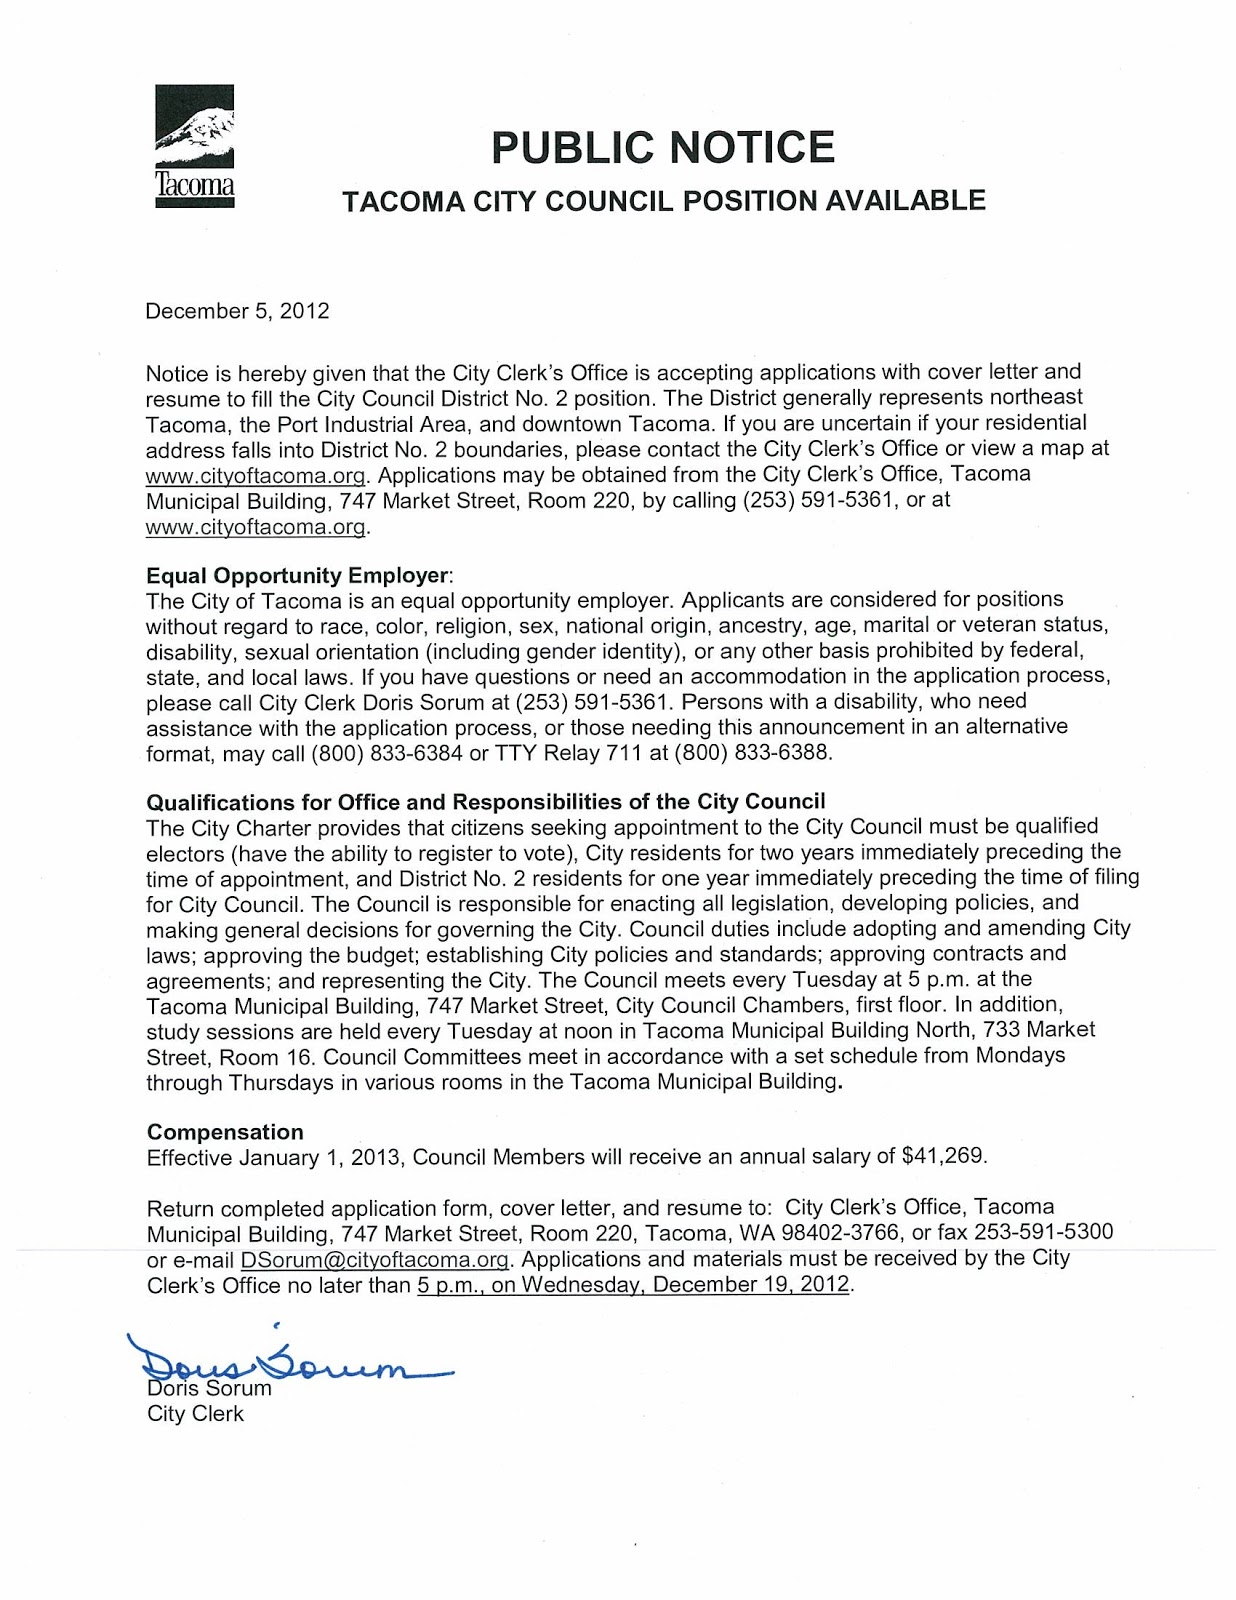 city clerk s office is now accepting applications with cover letter